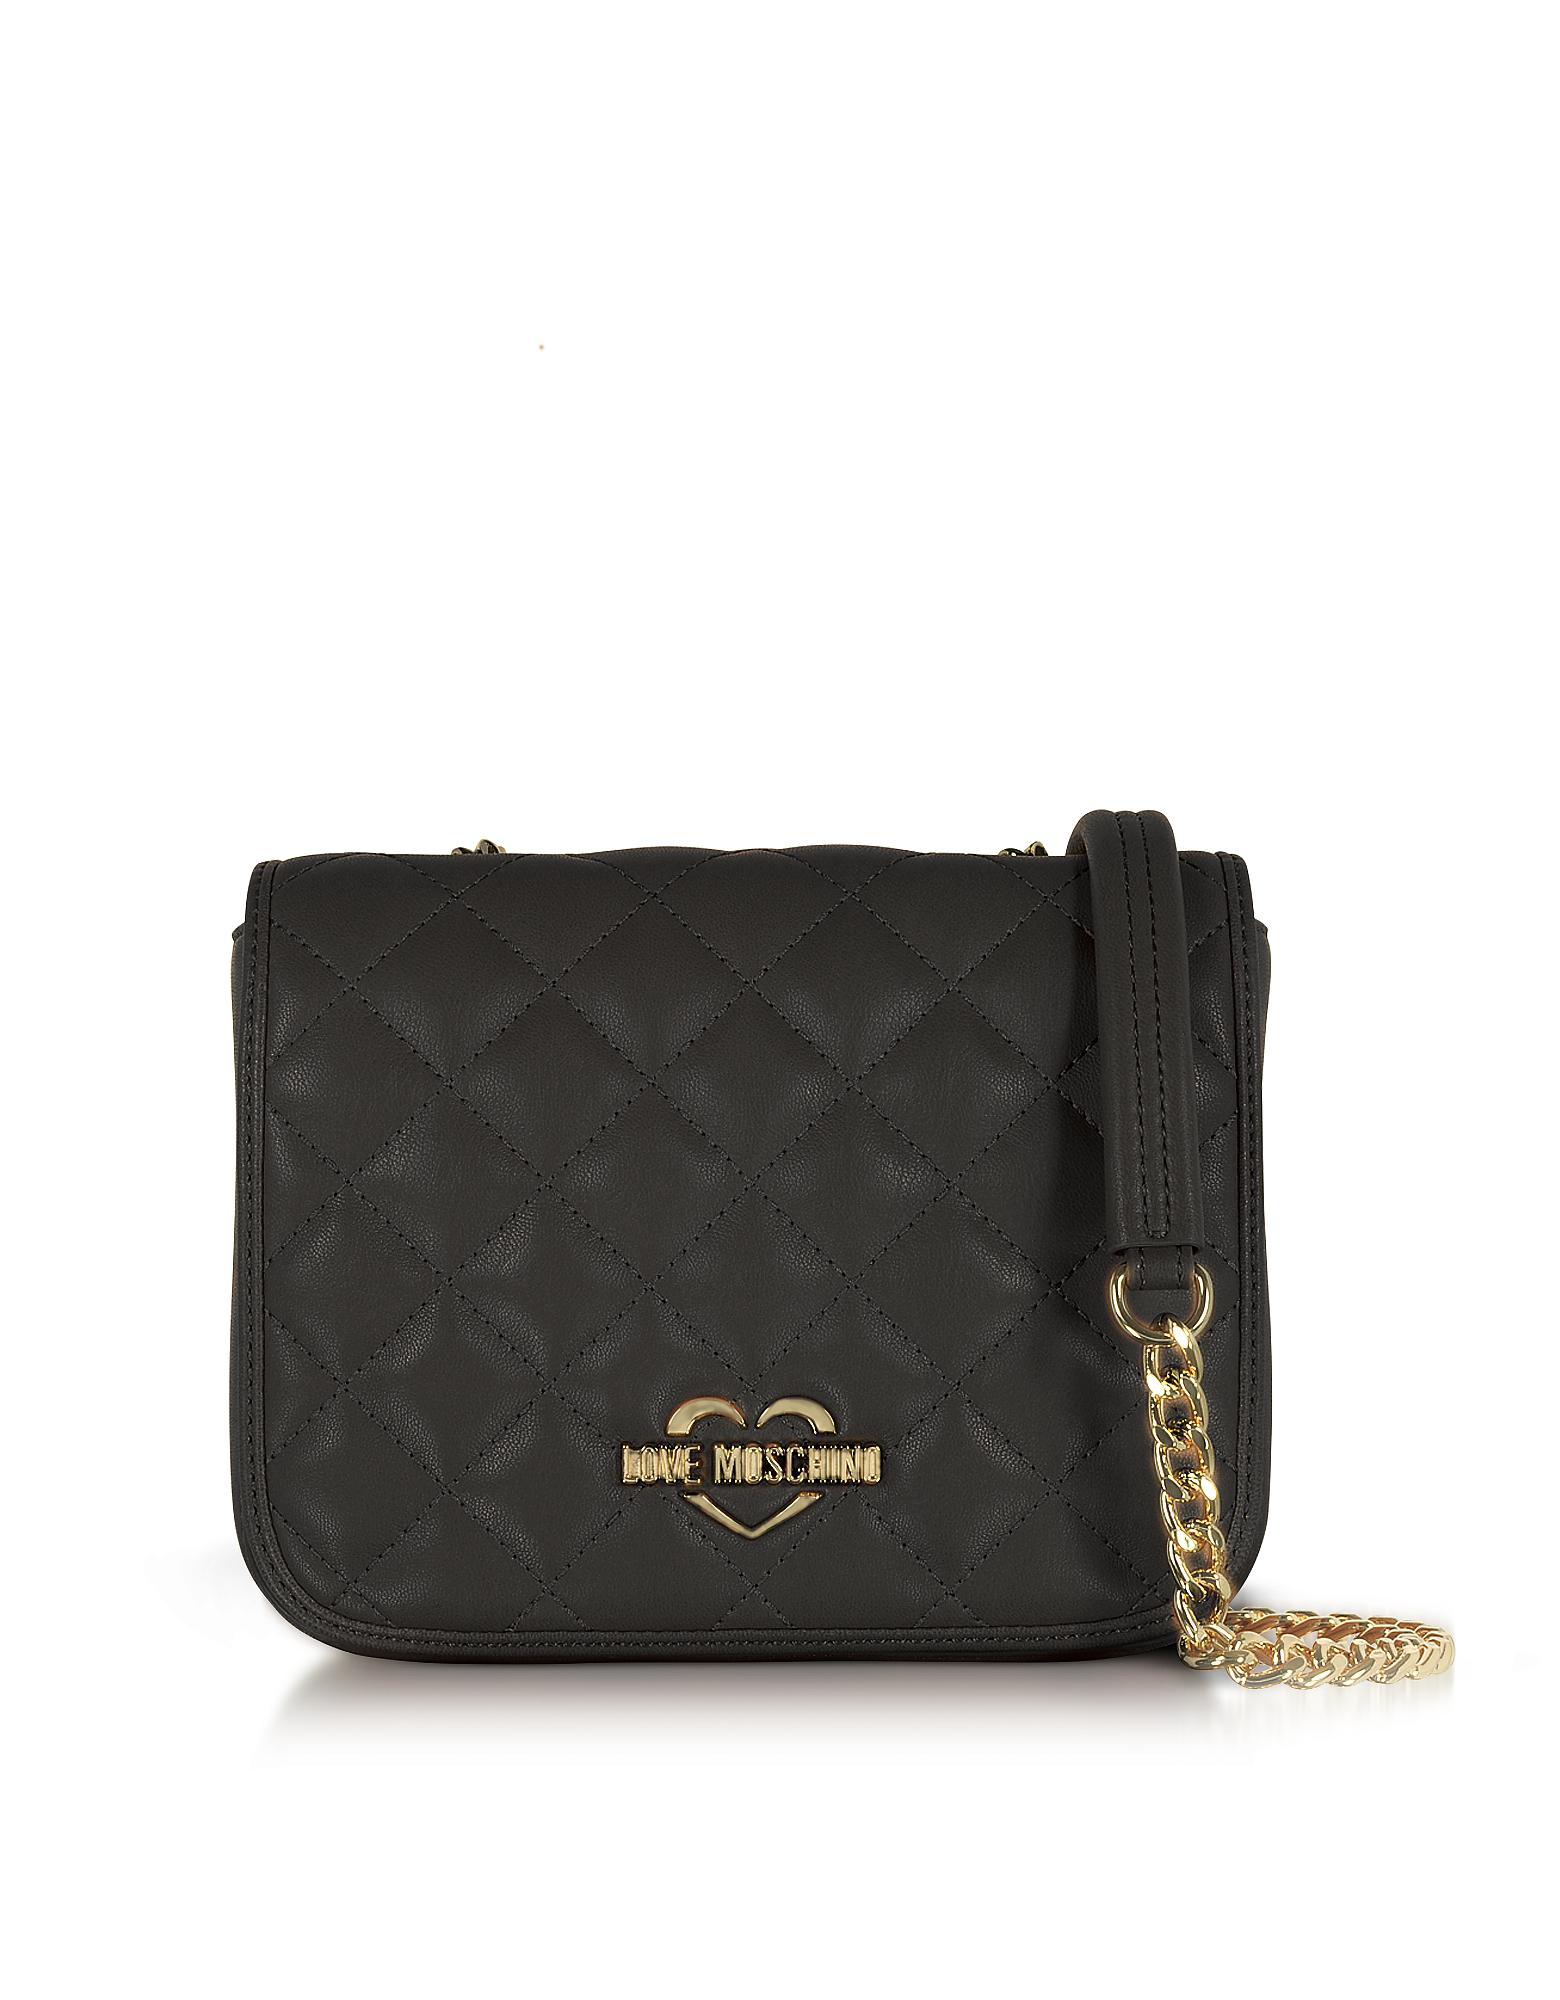 4674cc48e5a7 Love Moschino Superquilted Eco-leather Shoulder Bag in Black - Lyst